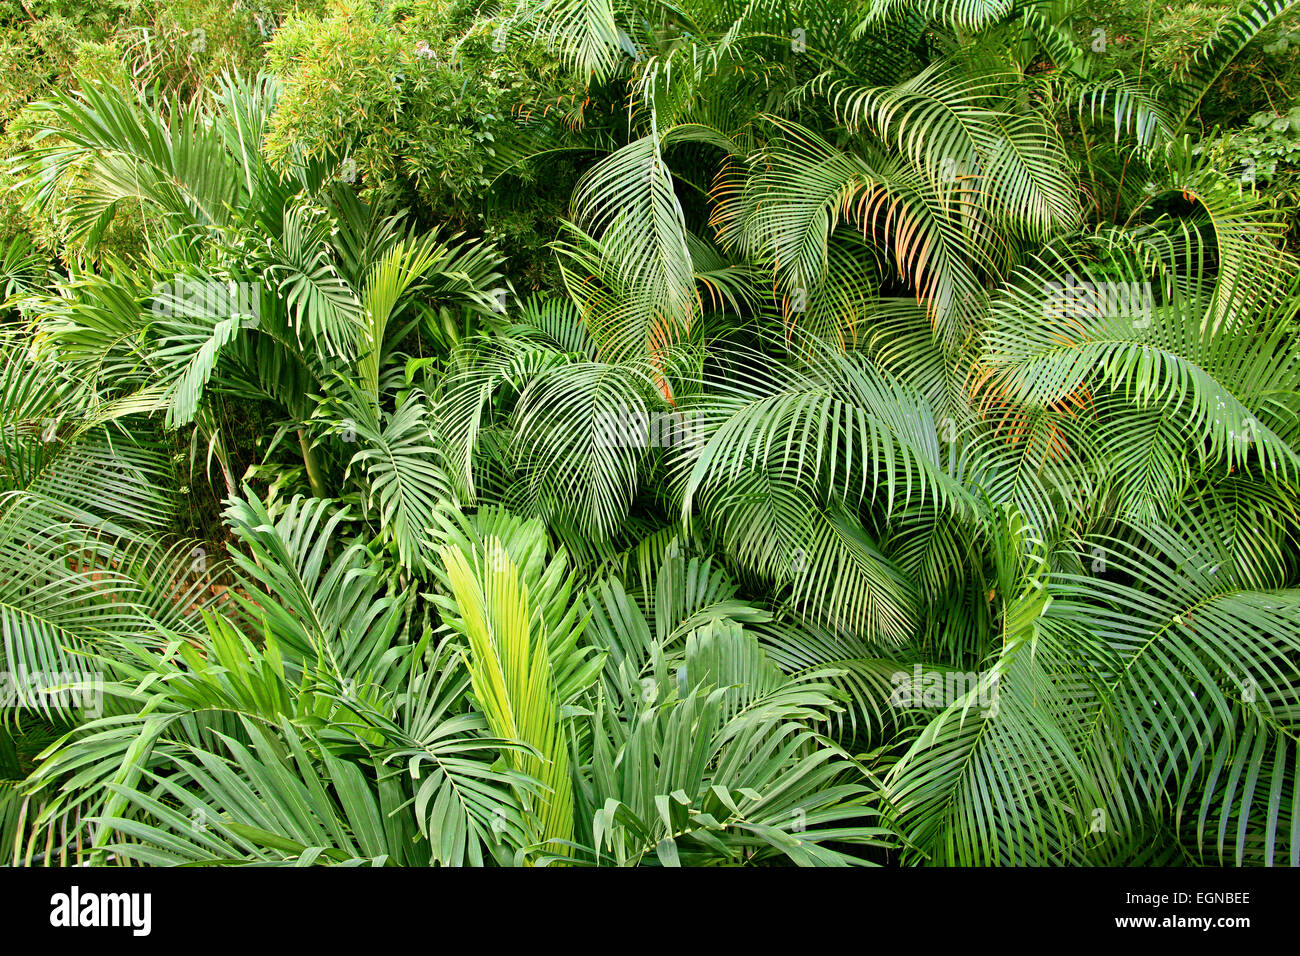 Yellow Palm Areca Palm Chrysalidocarpus Lutescens Areca Palm Chrysalidocarpus Lutescens Stock Photos And Areca